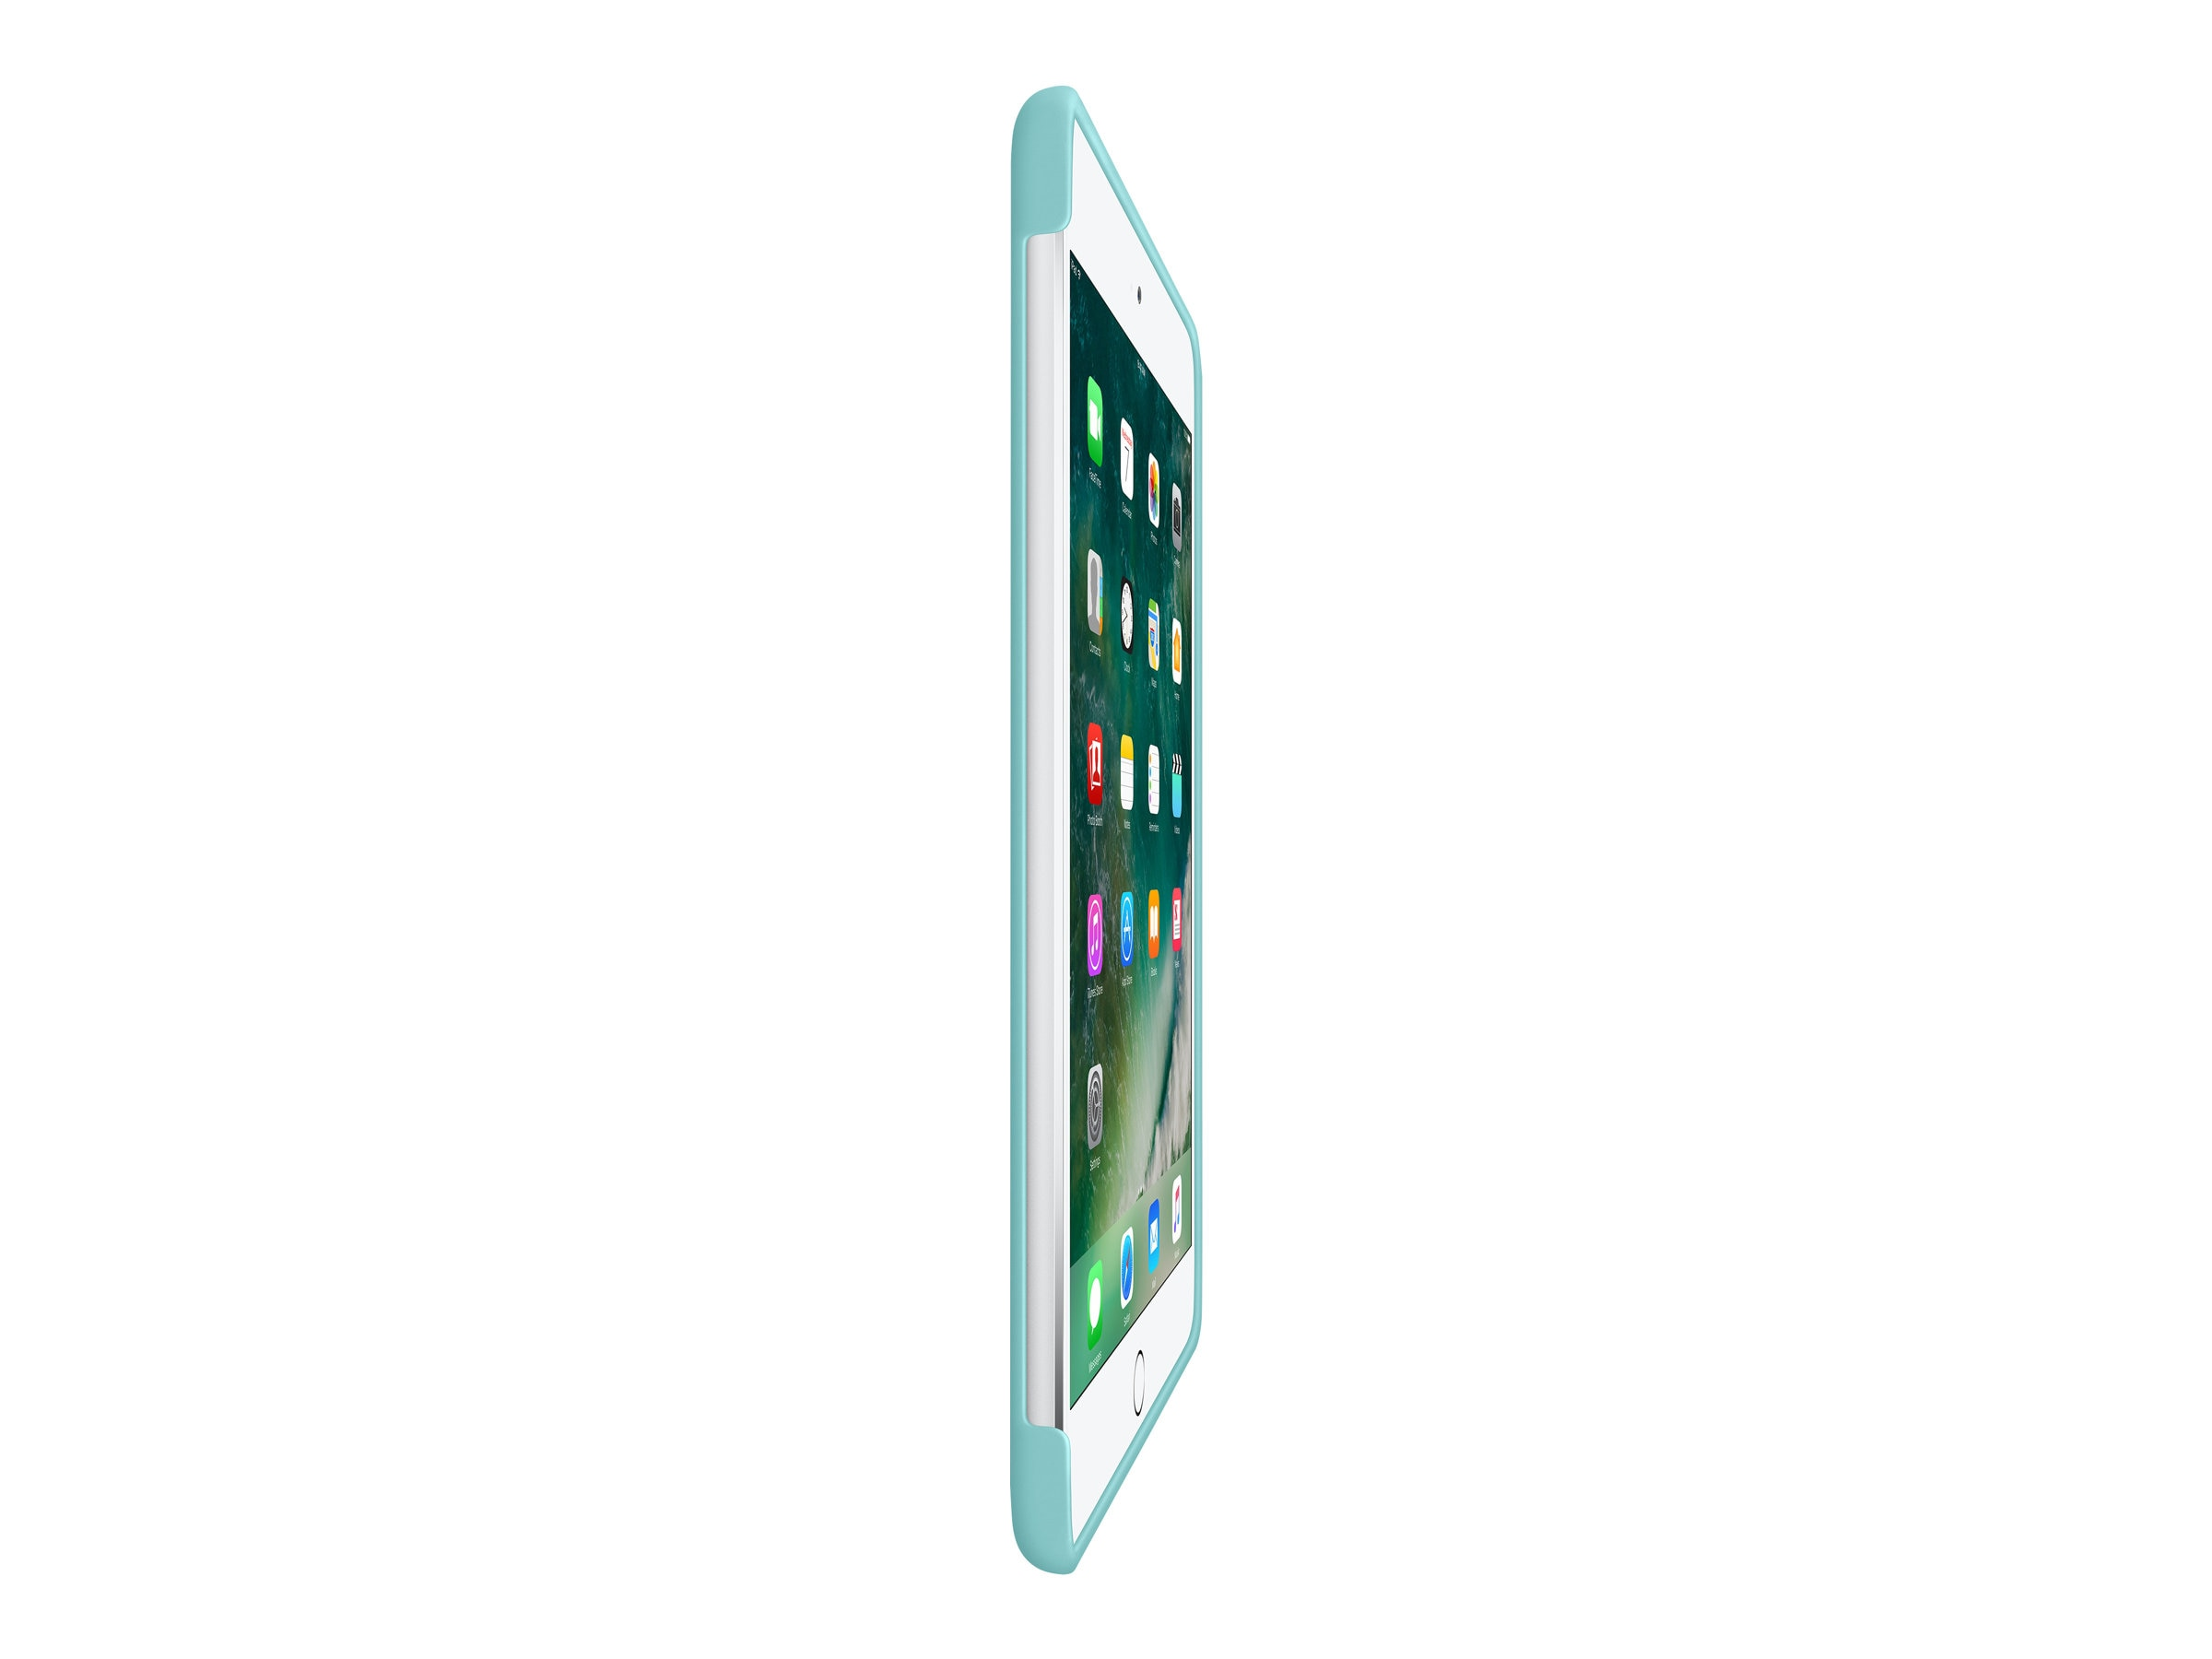 Apple Silicone Case for iPad mini 4, Sea Blue, MN2P2ZM/A, 32669139, Carrying Cases - Tablets & eReaders